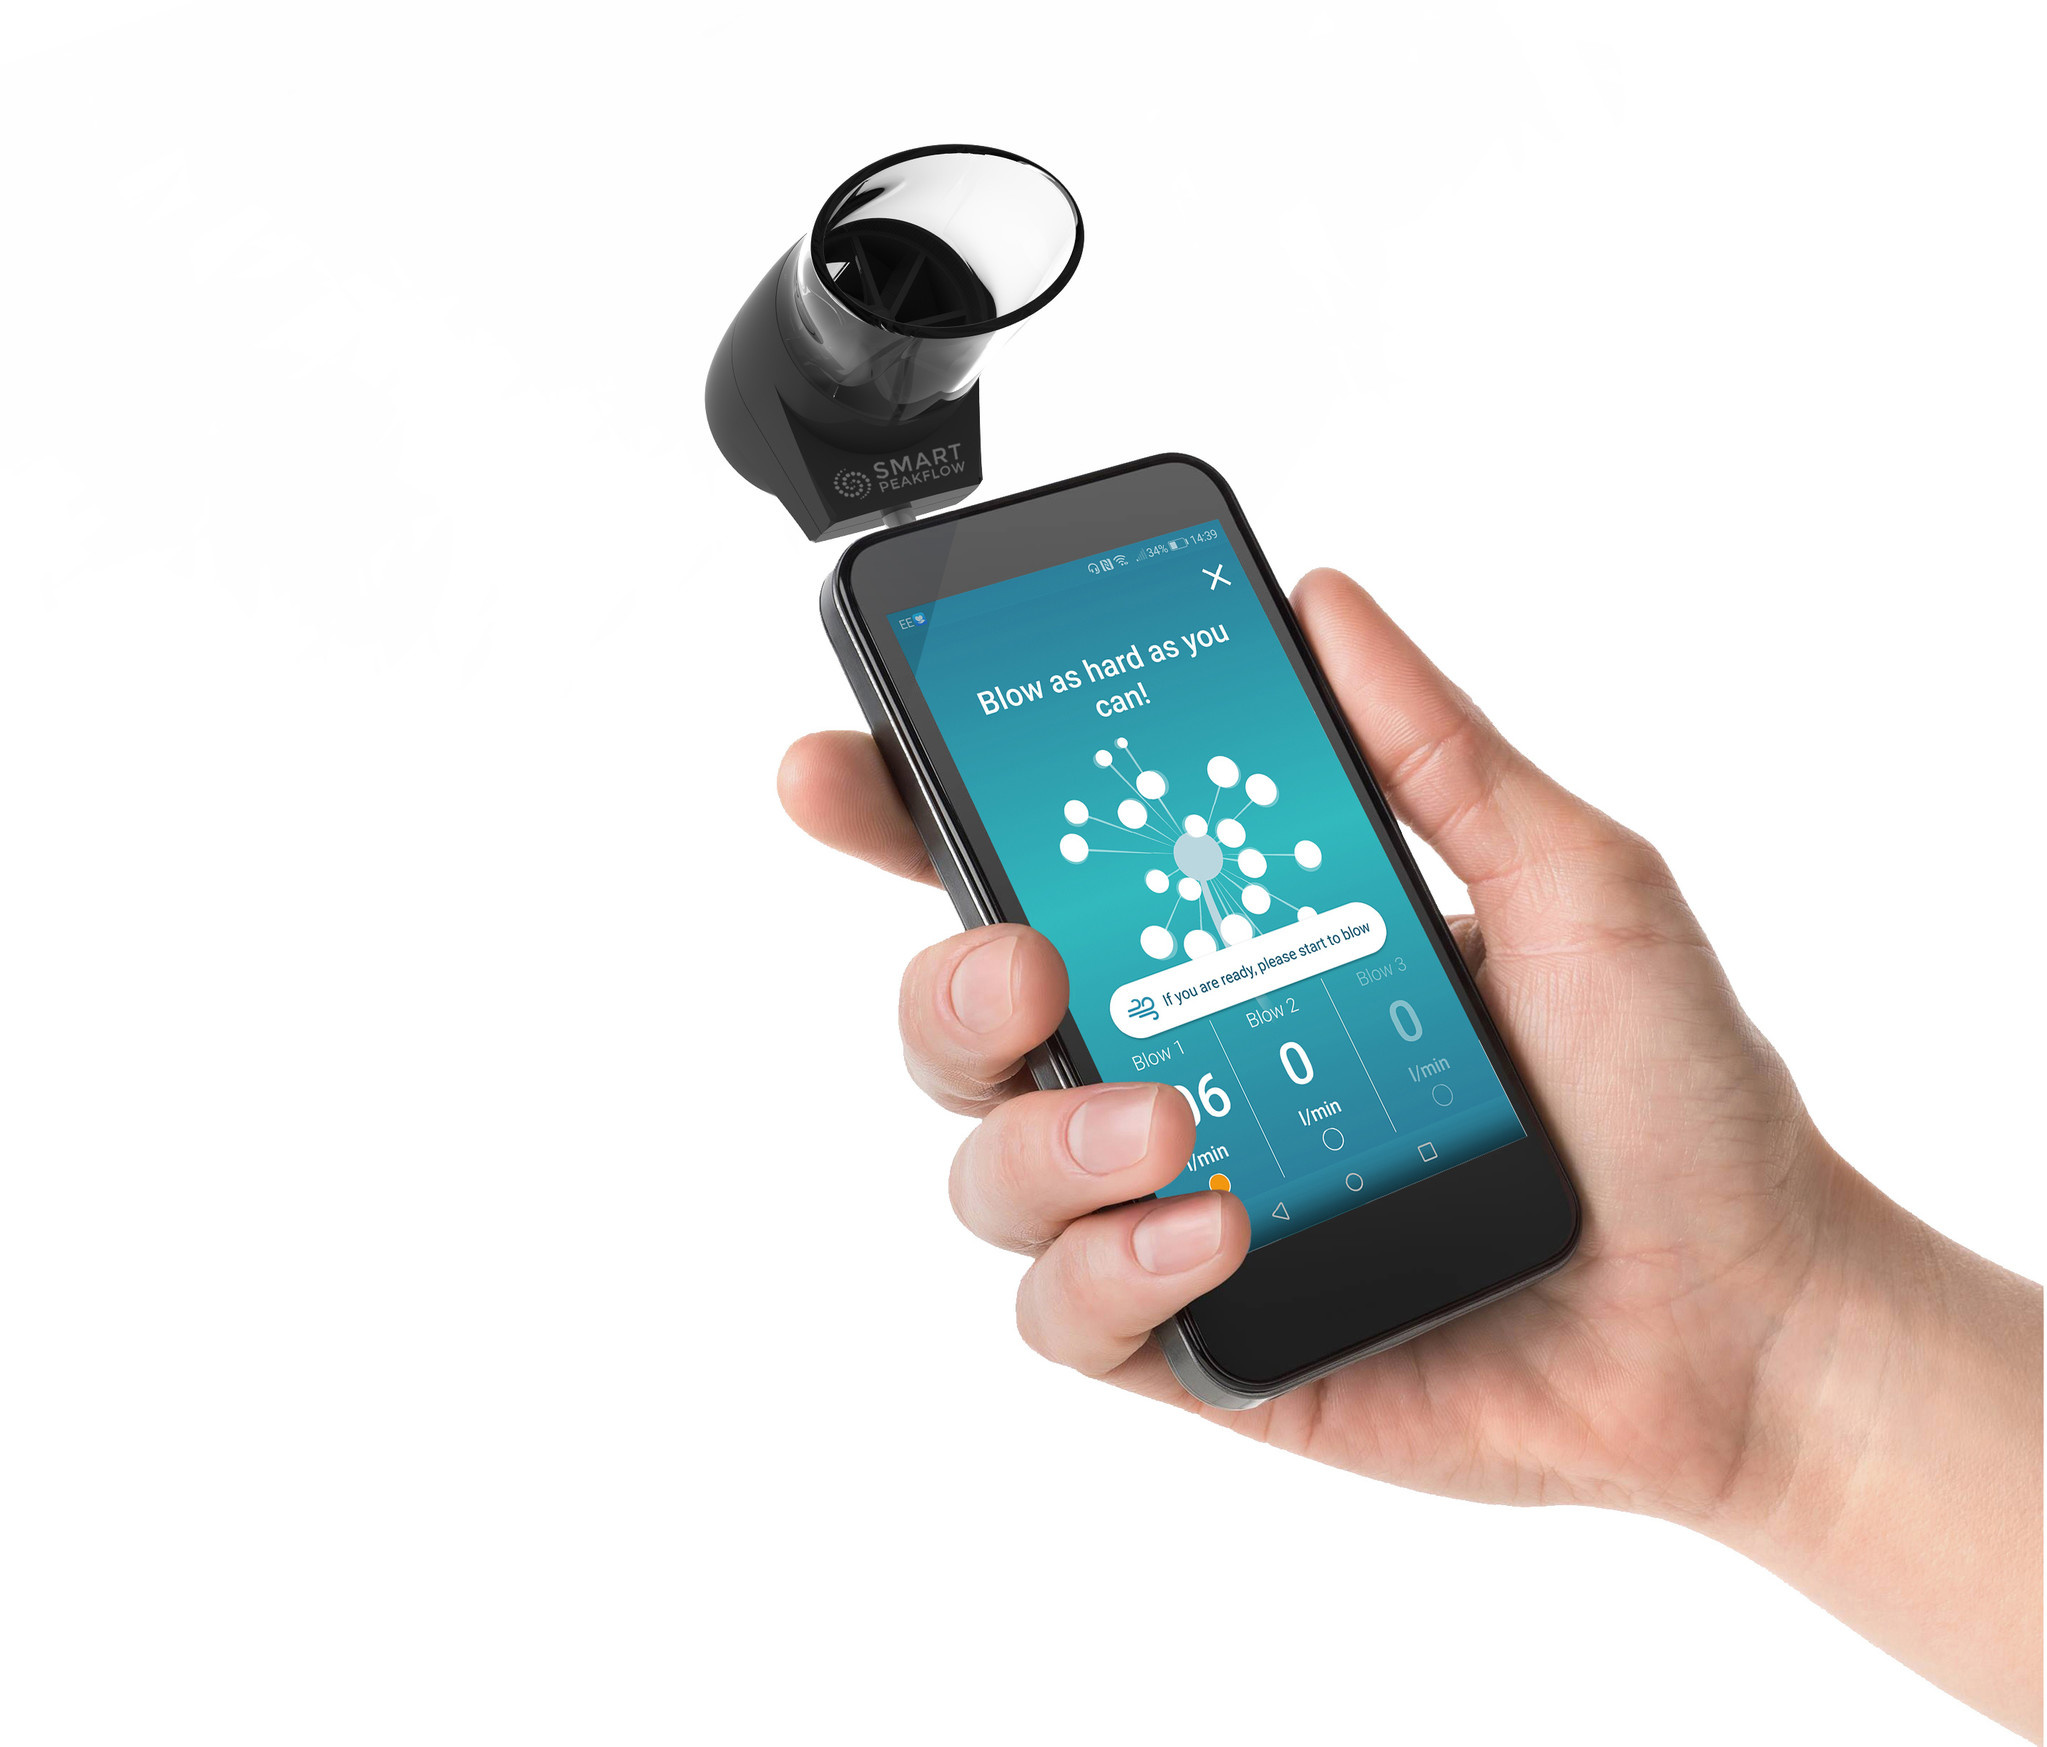 Smart Peak Flow Meter now on your smartphone for your asthma